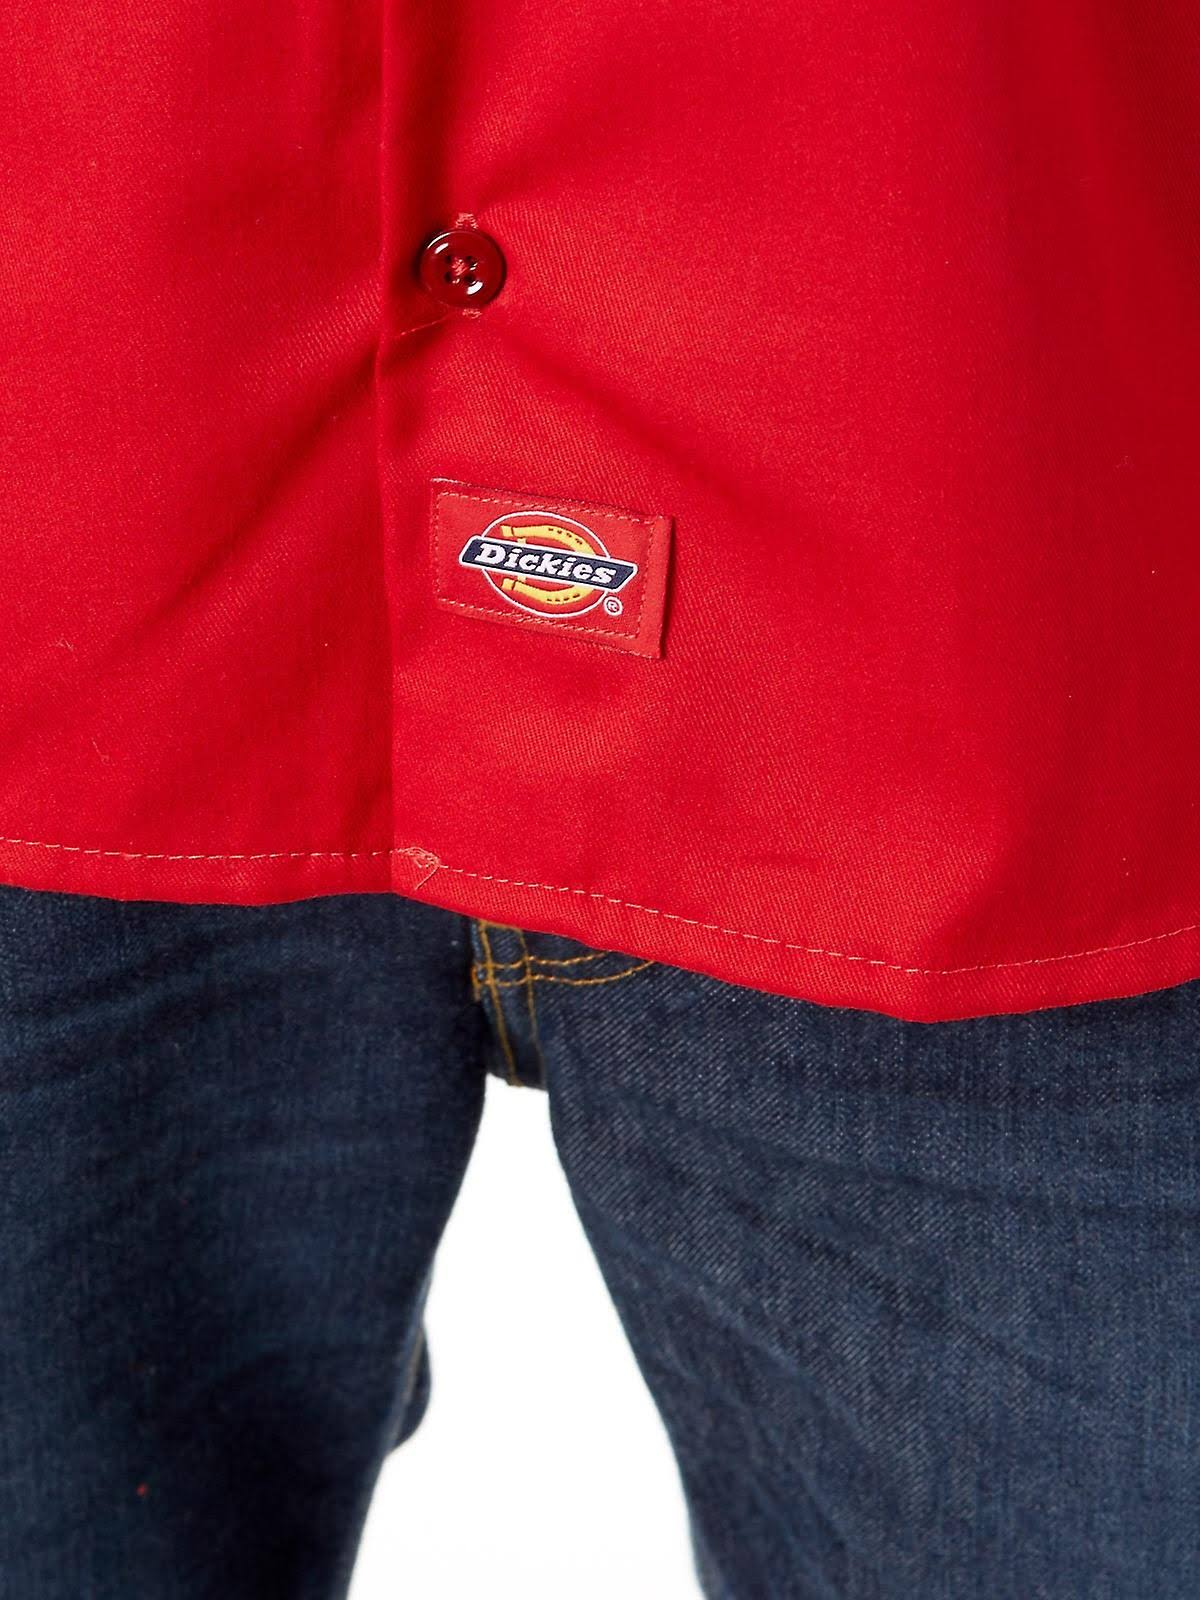 Englisch Med'm Kurzarm Vermelho arbeitshemd Red Dickies qxfZwx